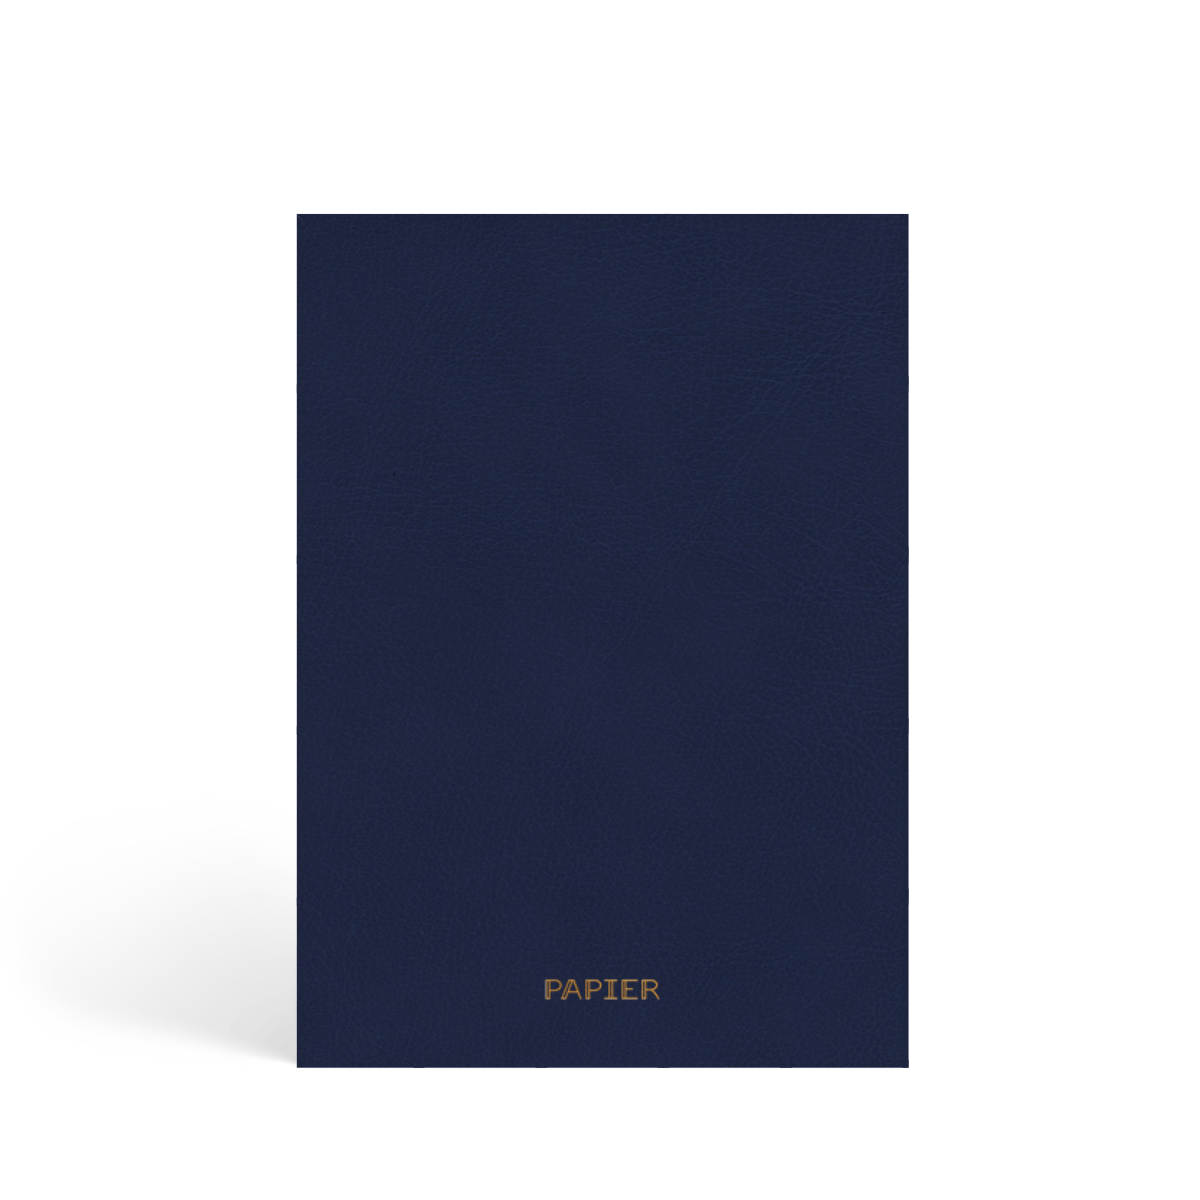 Https%3a%2f%2fwww.papier.com%2fproduct image%2f95374%2f5%2froyal blue monogram 23879 back 1573495917.png?ixlib=rb 1.1